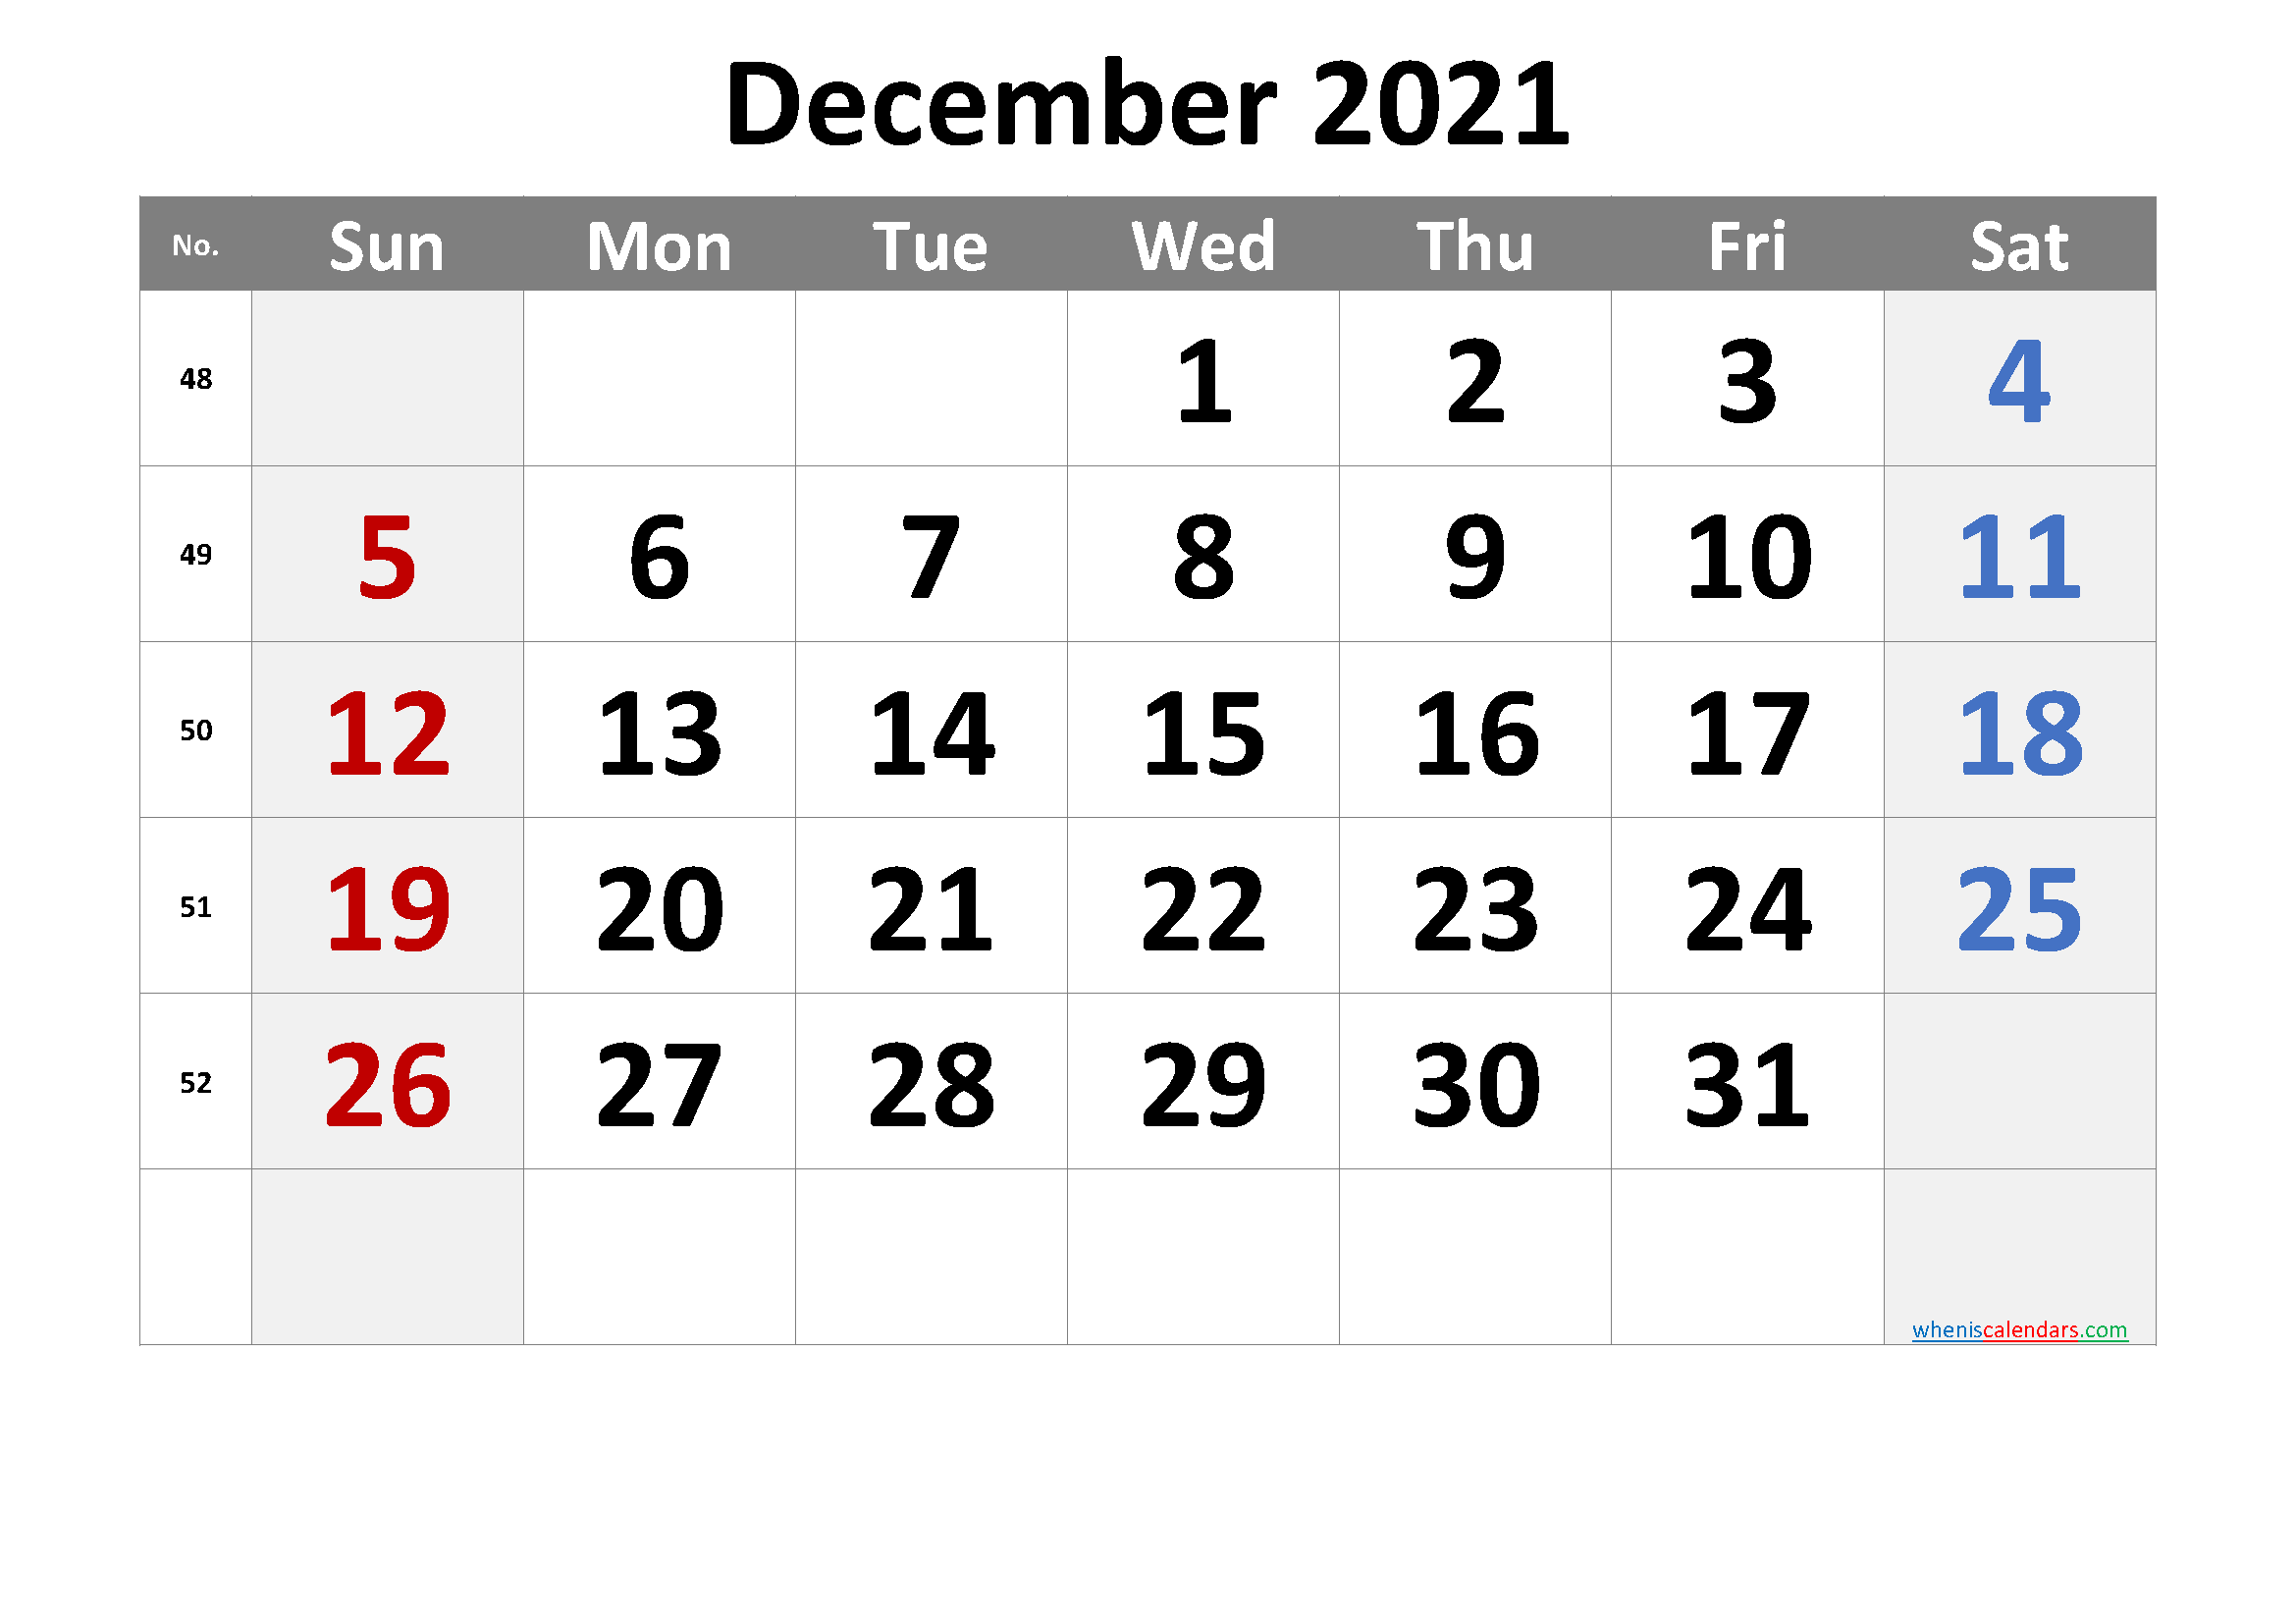 December 2021 Printable Calendar with Week Numbers